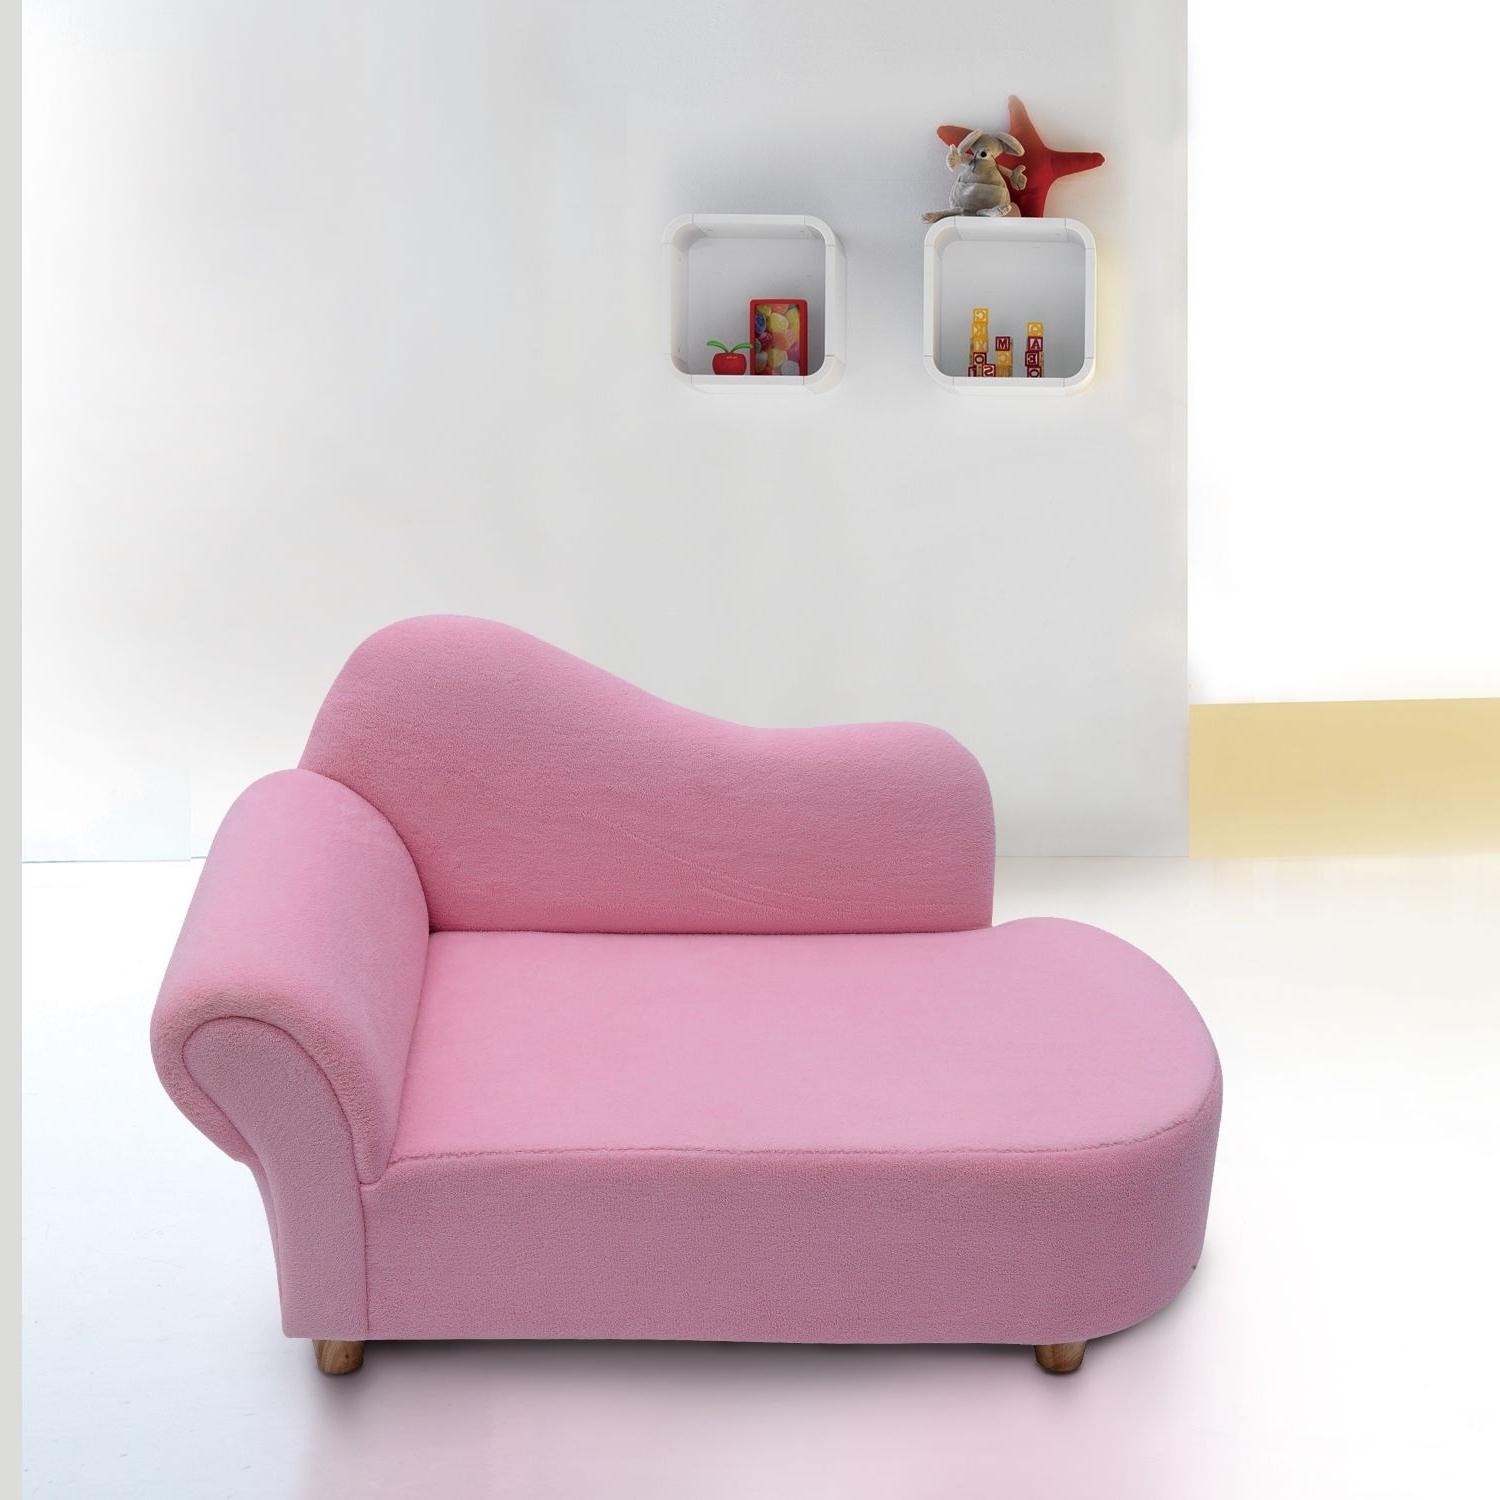 Children's Chaise Lounges Regarding Widely Used Homcom Velvet Kids Chaise Lounge Sofa Pink (View 11 of 15)